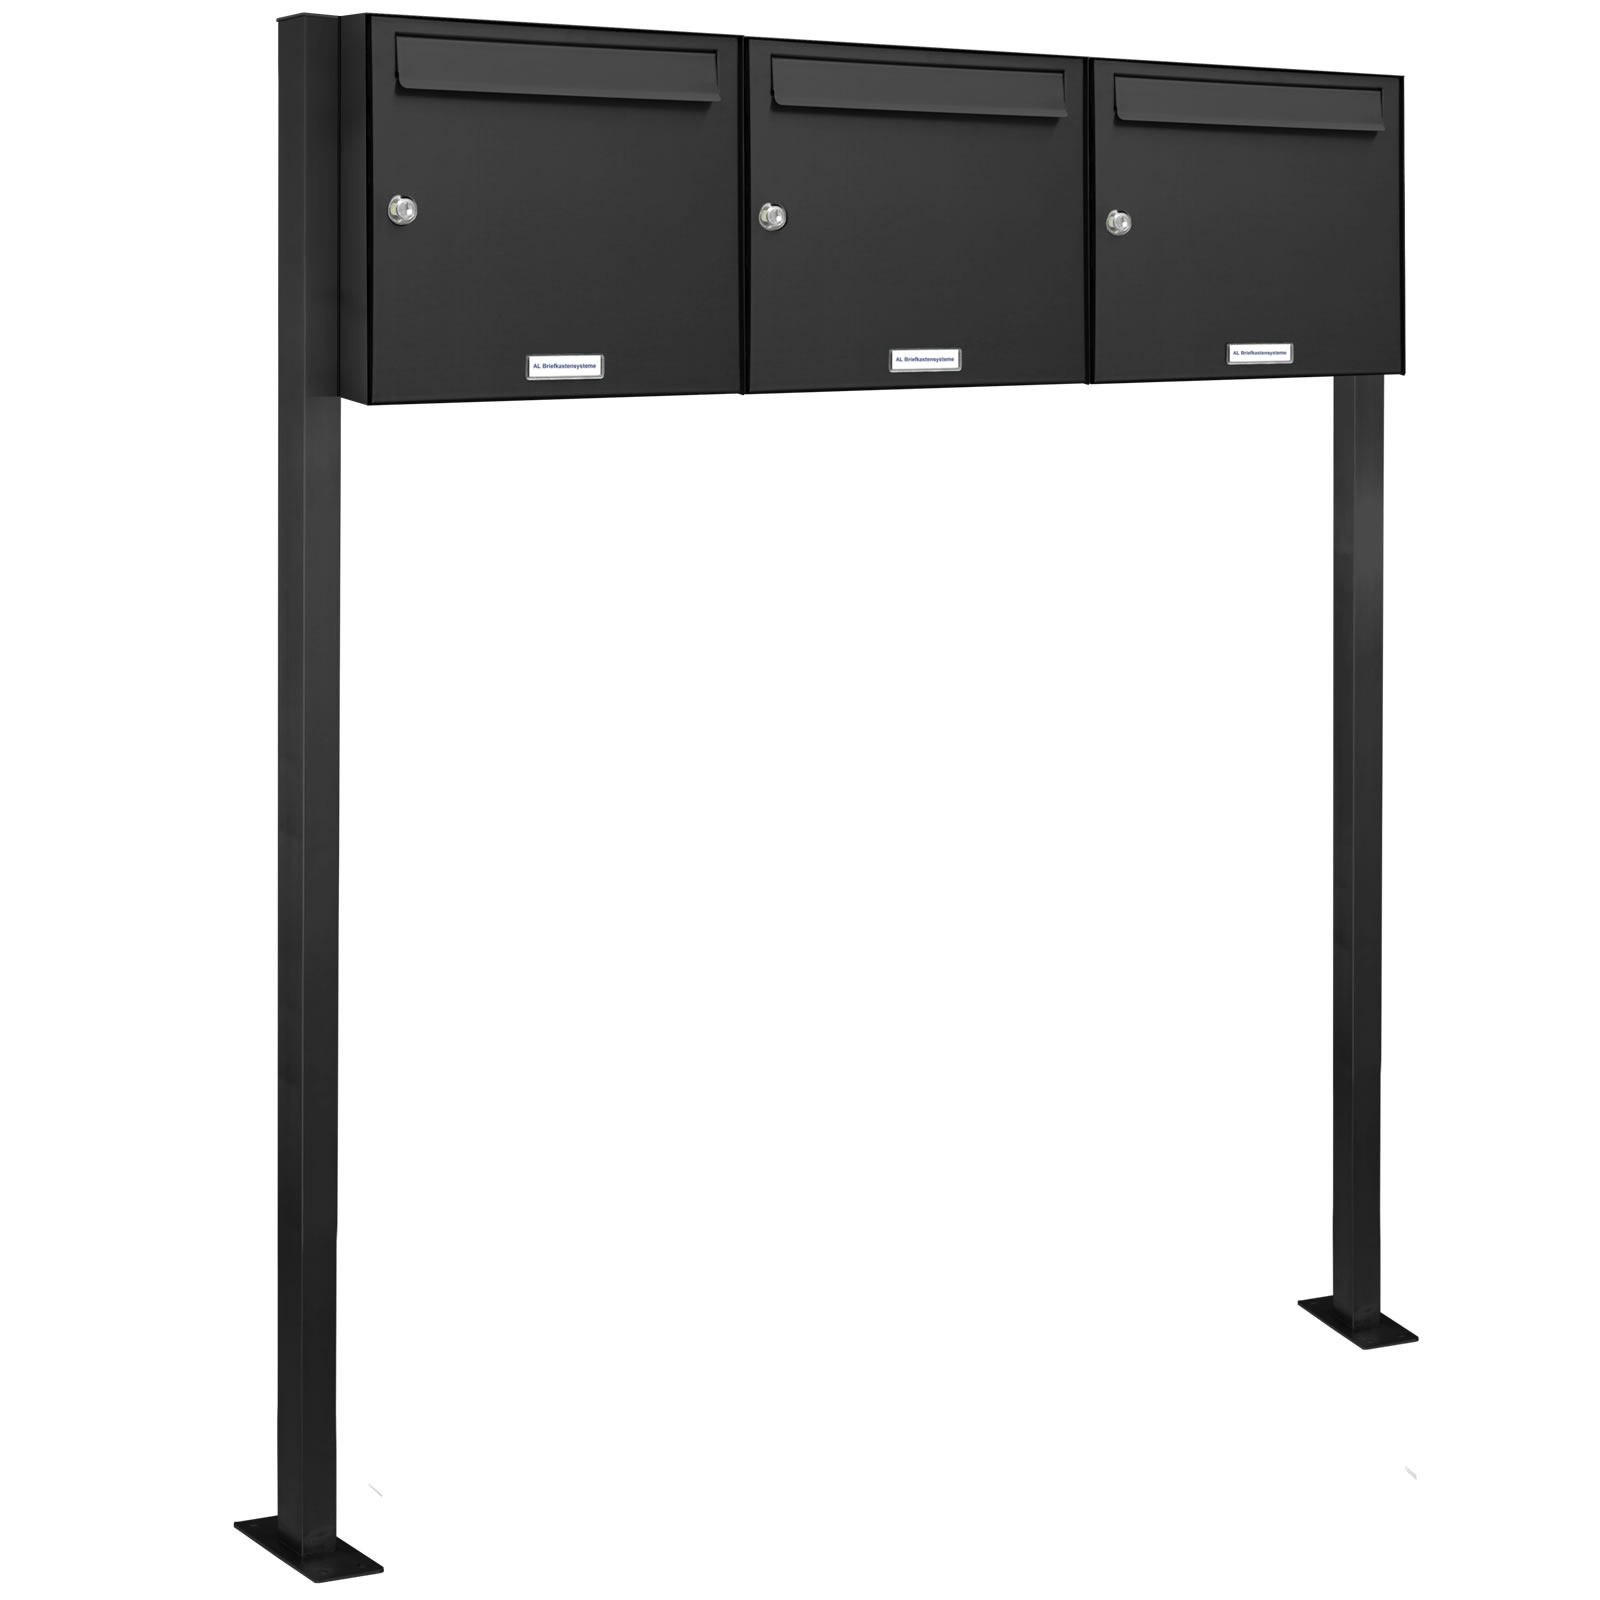 3er 3x1 standbriefkasten anlage freistehend ral 7016 anthrazit ebay. Black Bedroom Furniture Sets. Home Design Ideas